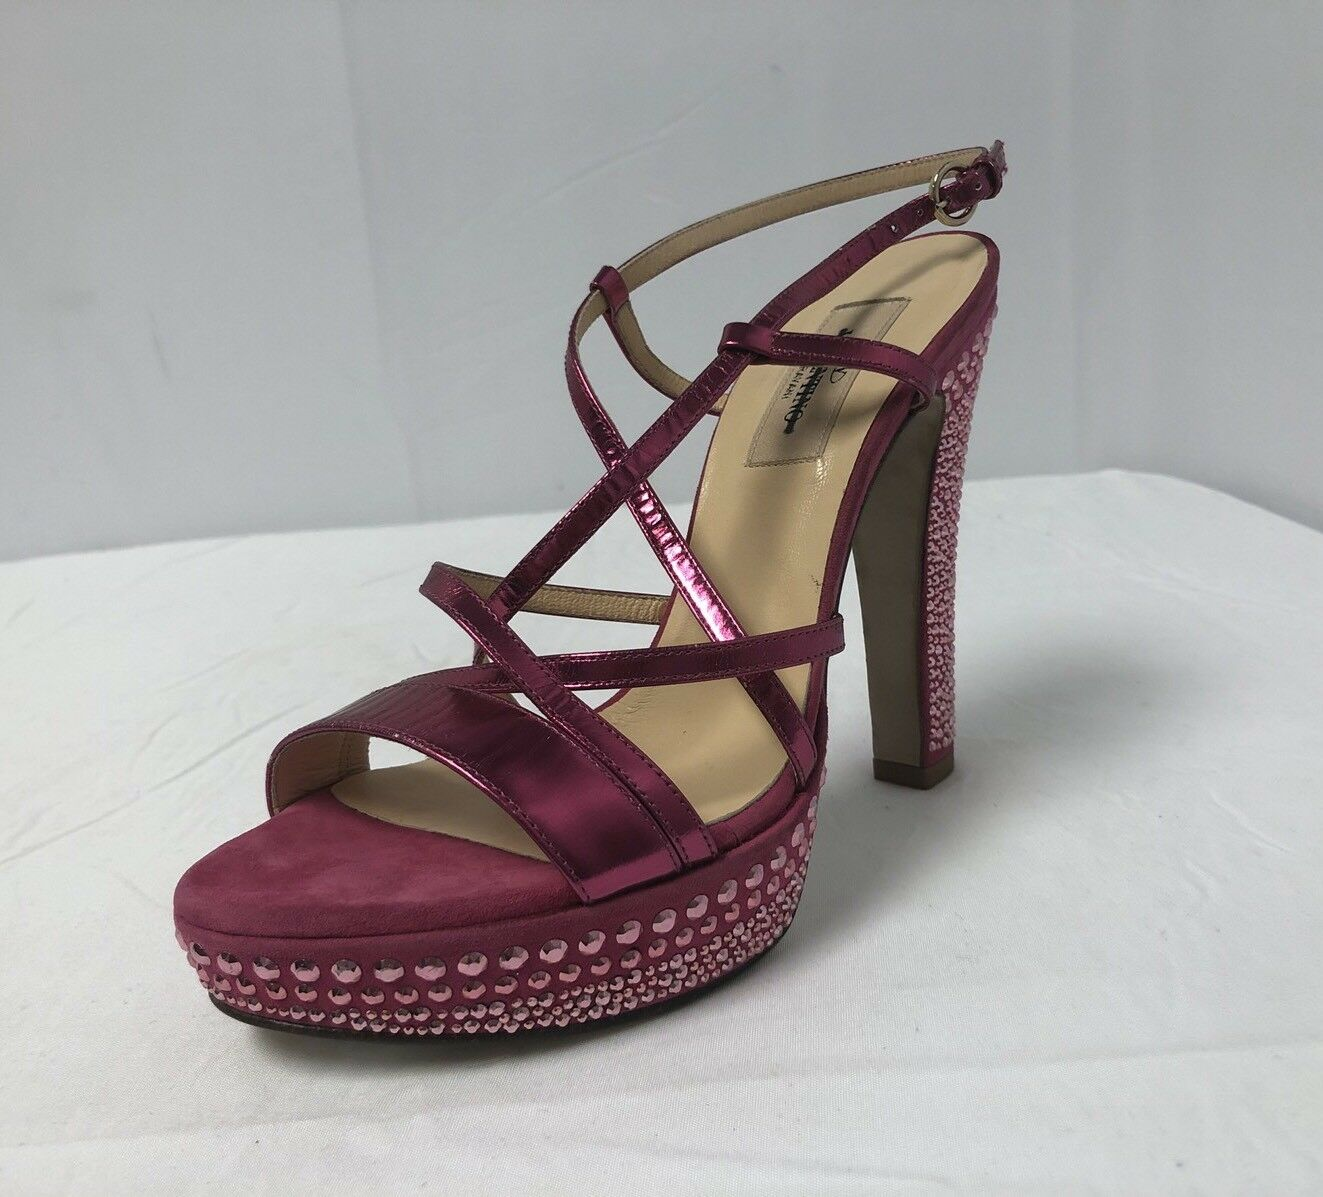 Valentino Glam Crystal Coated Rosa Suede Strappy Block Heel Pumps 37 7  1095.00